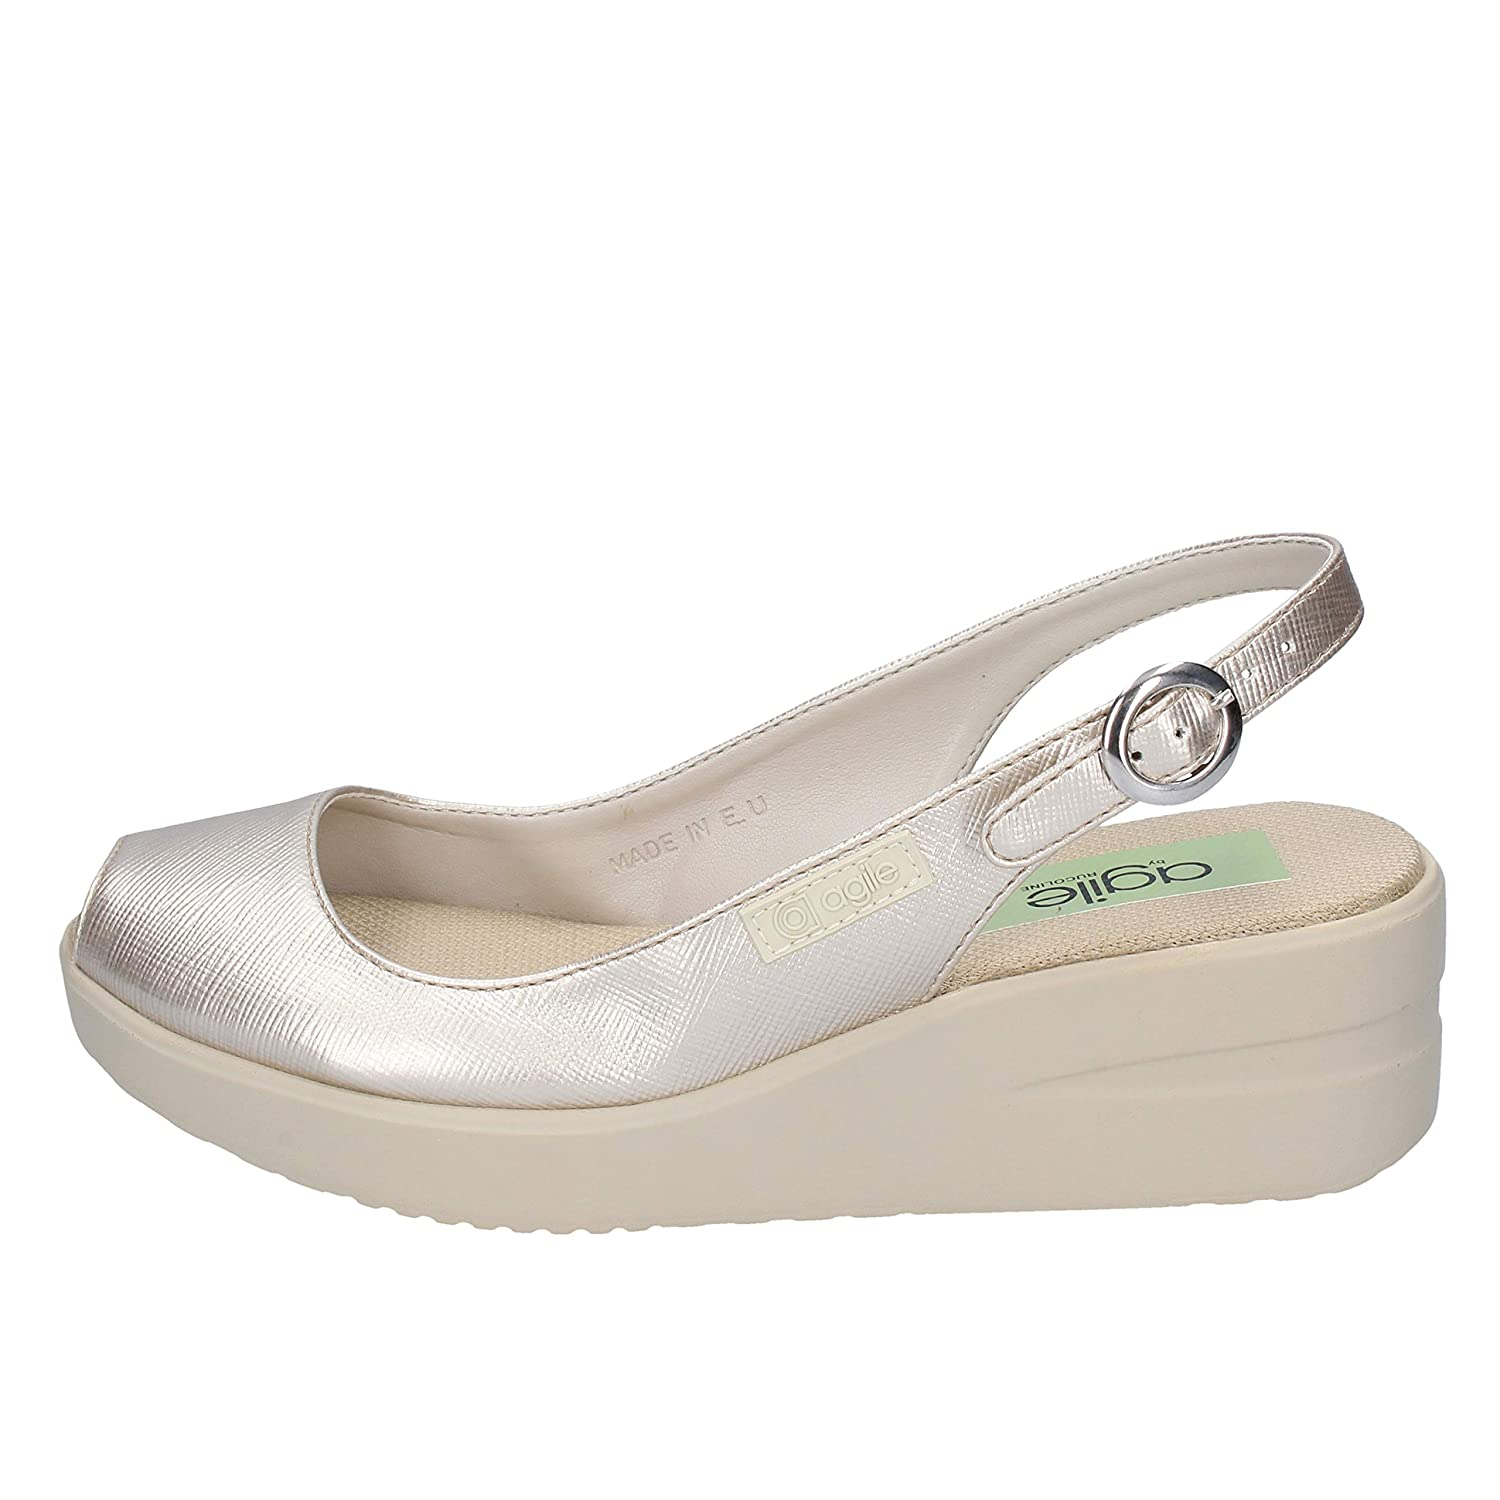 - Agile by Rucoline Sandals Womens Leather gold